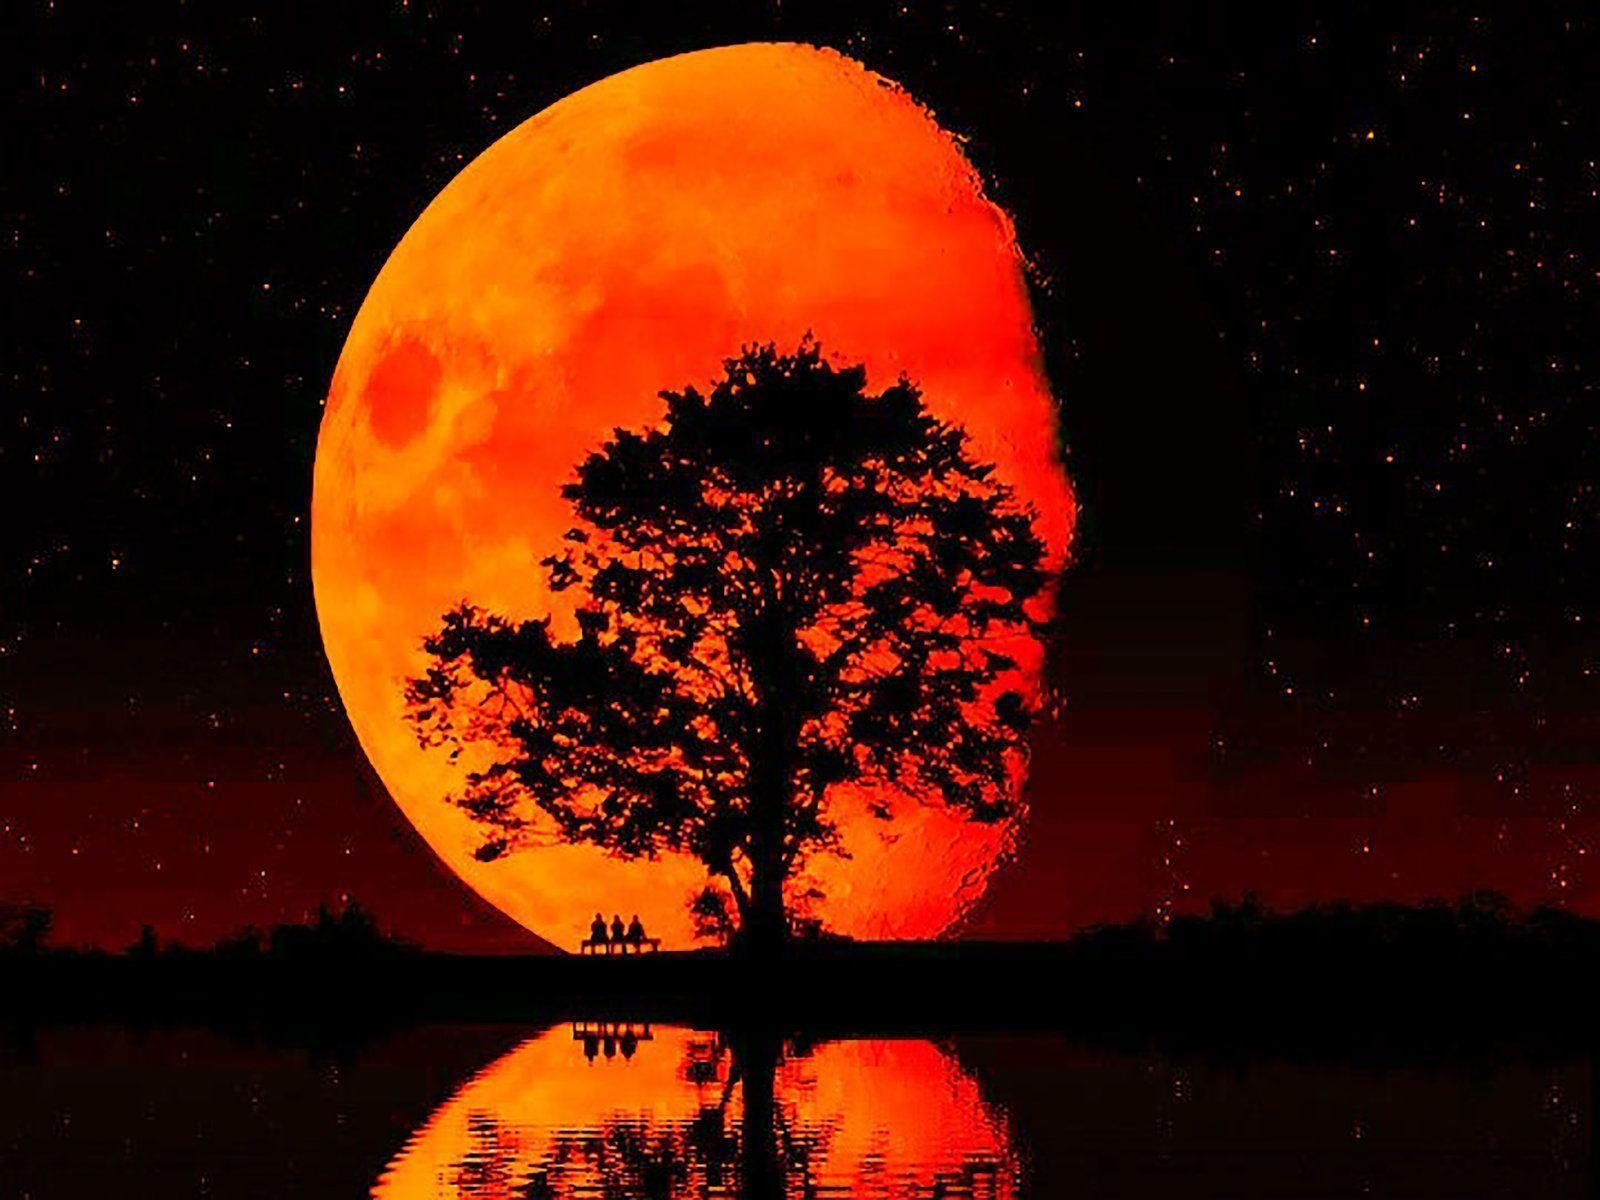 red moon backgrounds, dark moon wallpapers